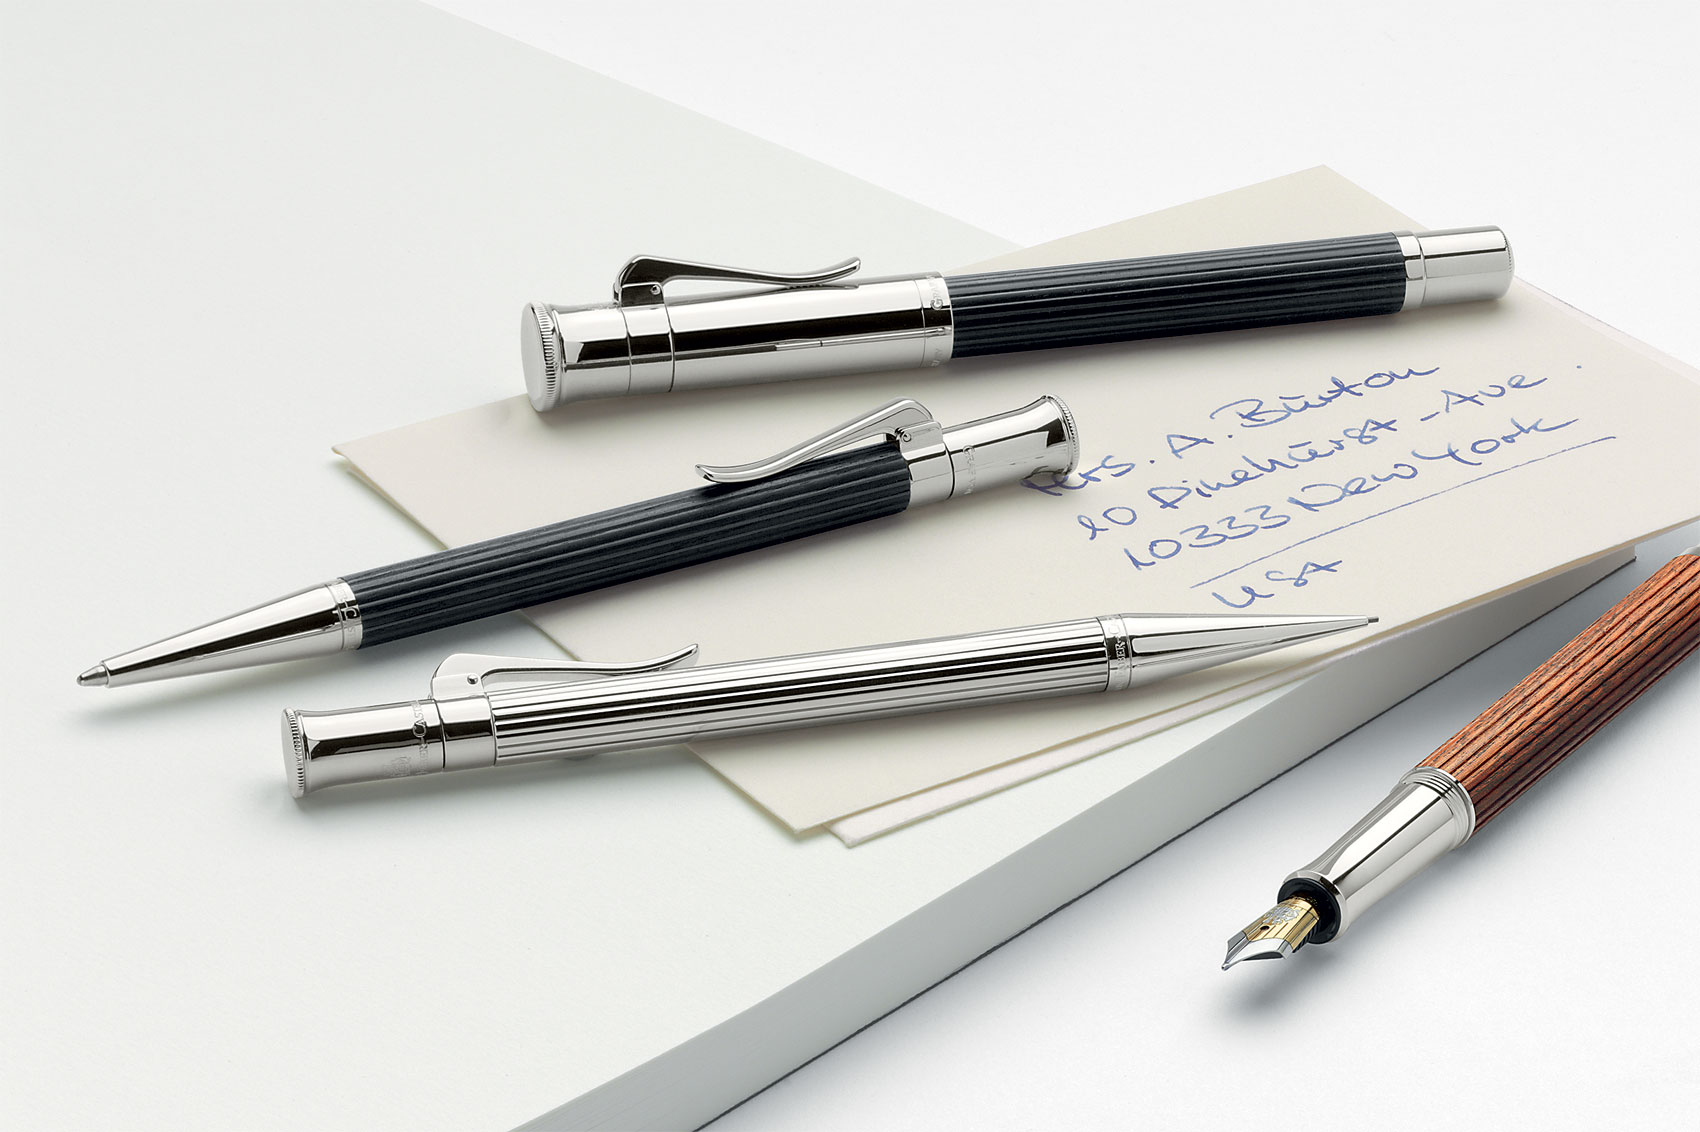 Henry McIntosh explores three heritage fountain pens, perfect for passing down the generations